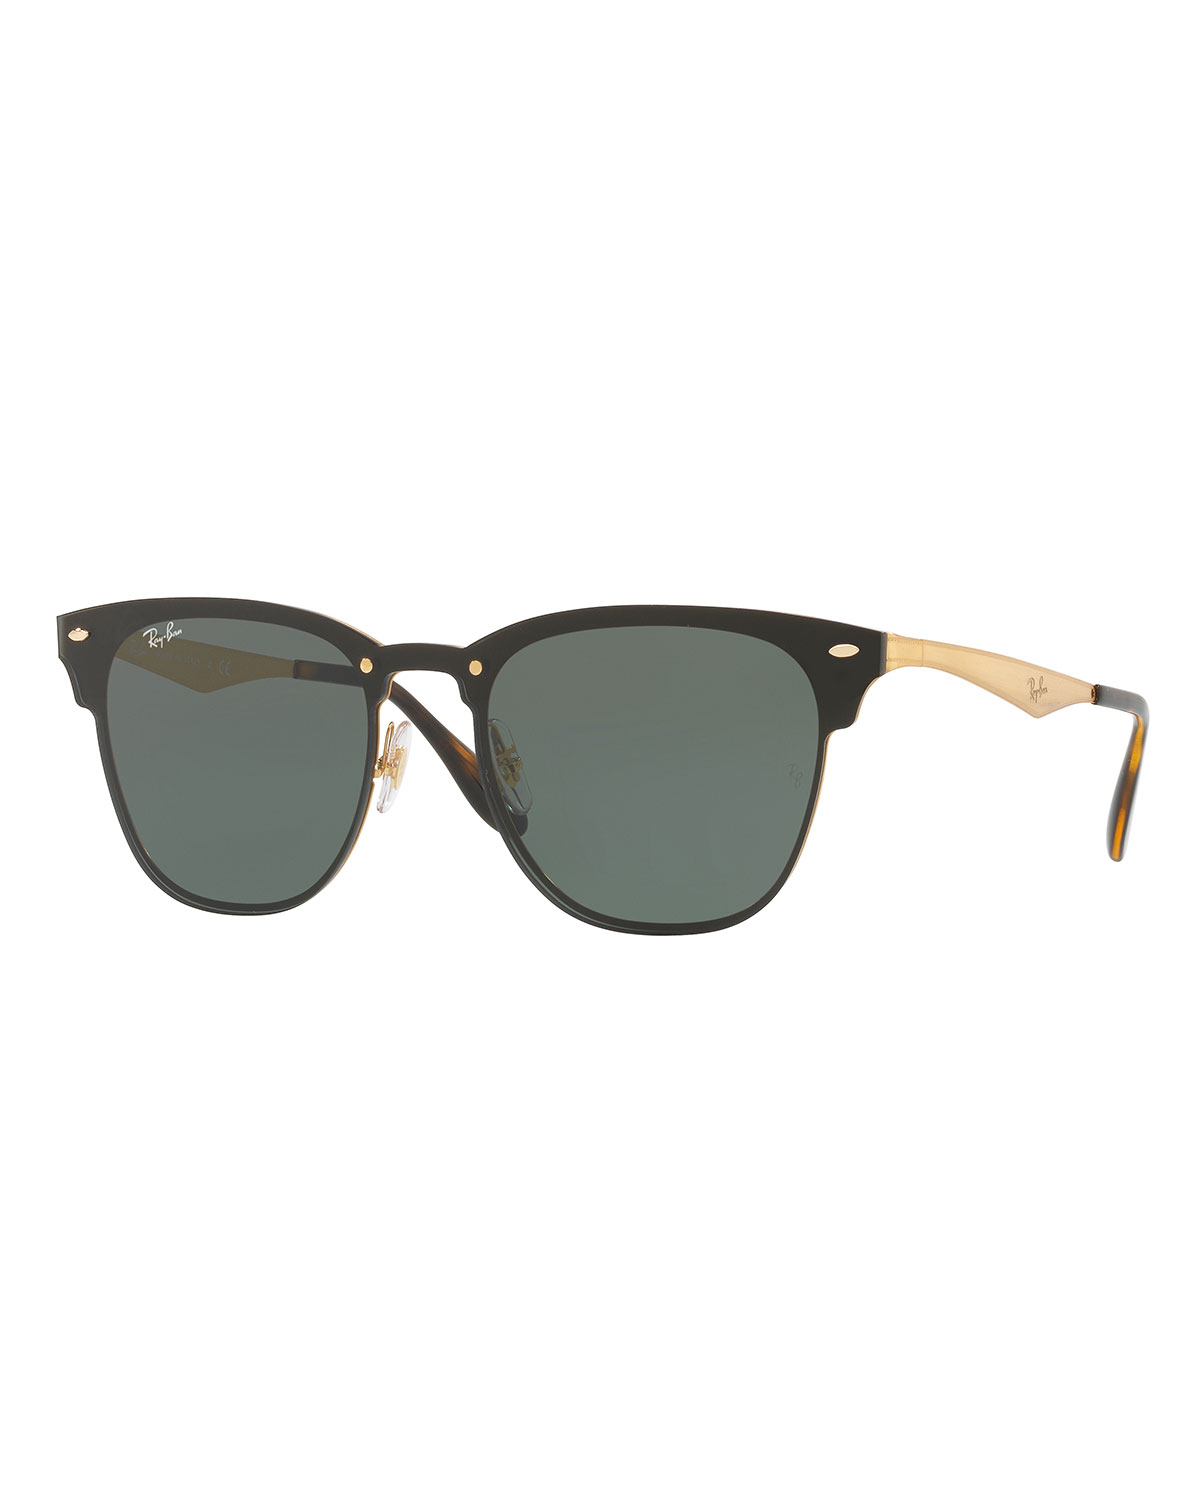 7b13e20a73f Black Gold Sunglasses